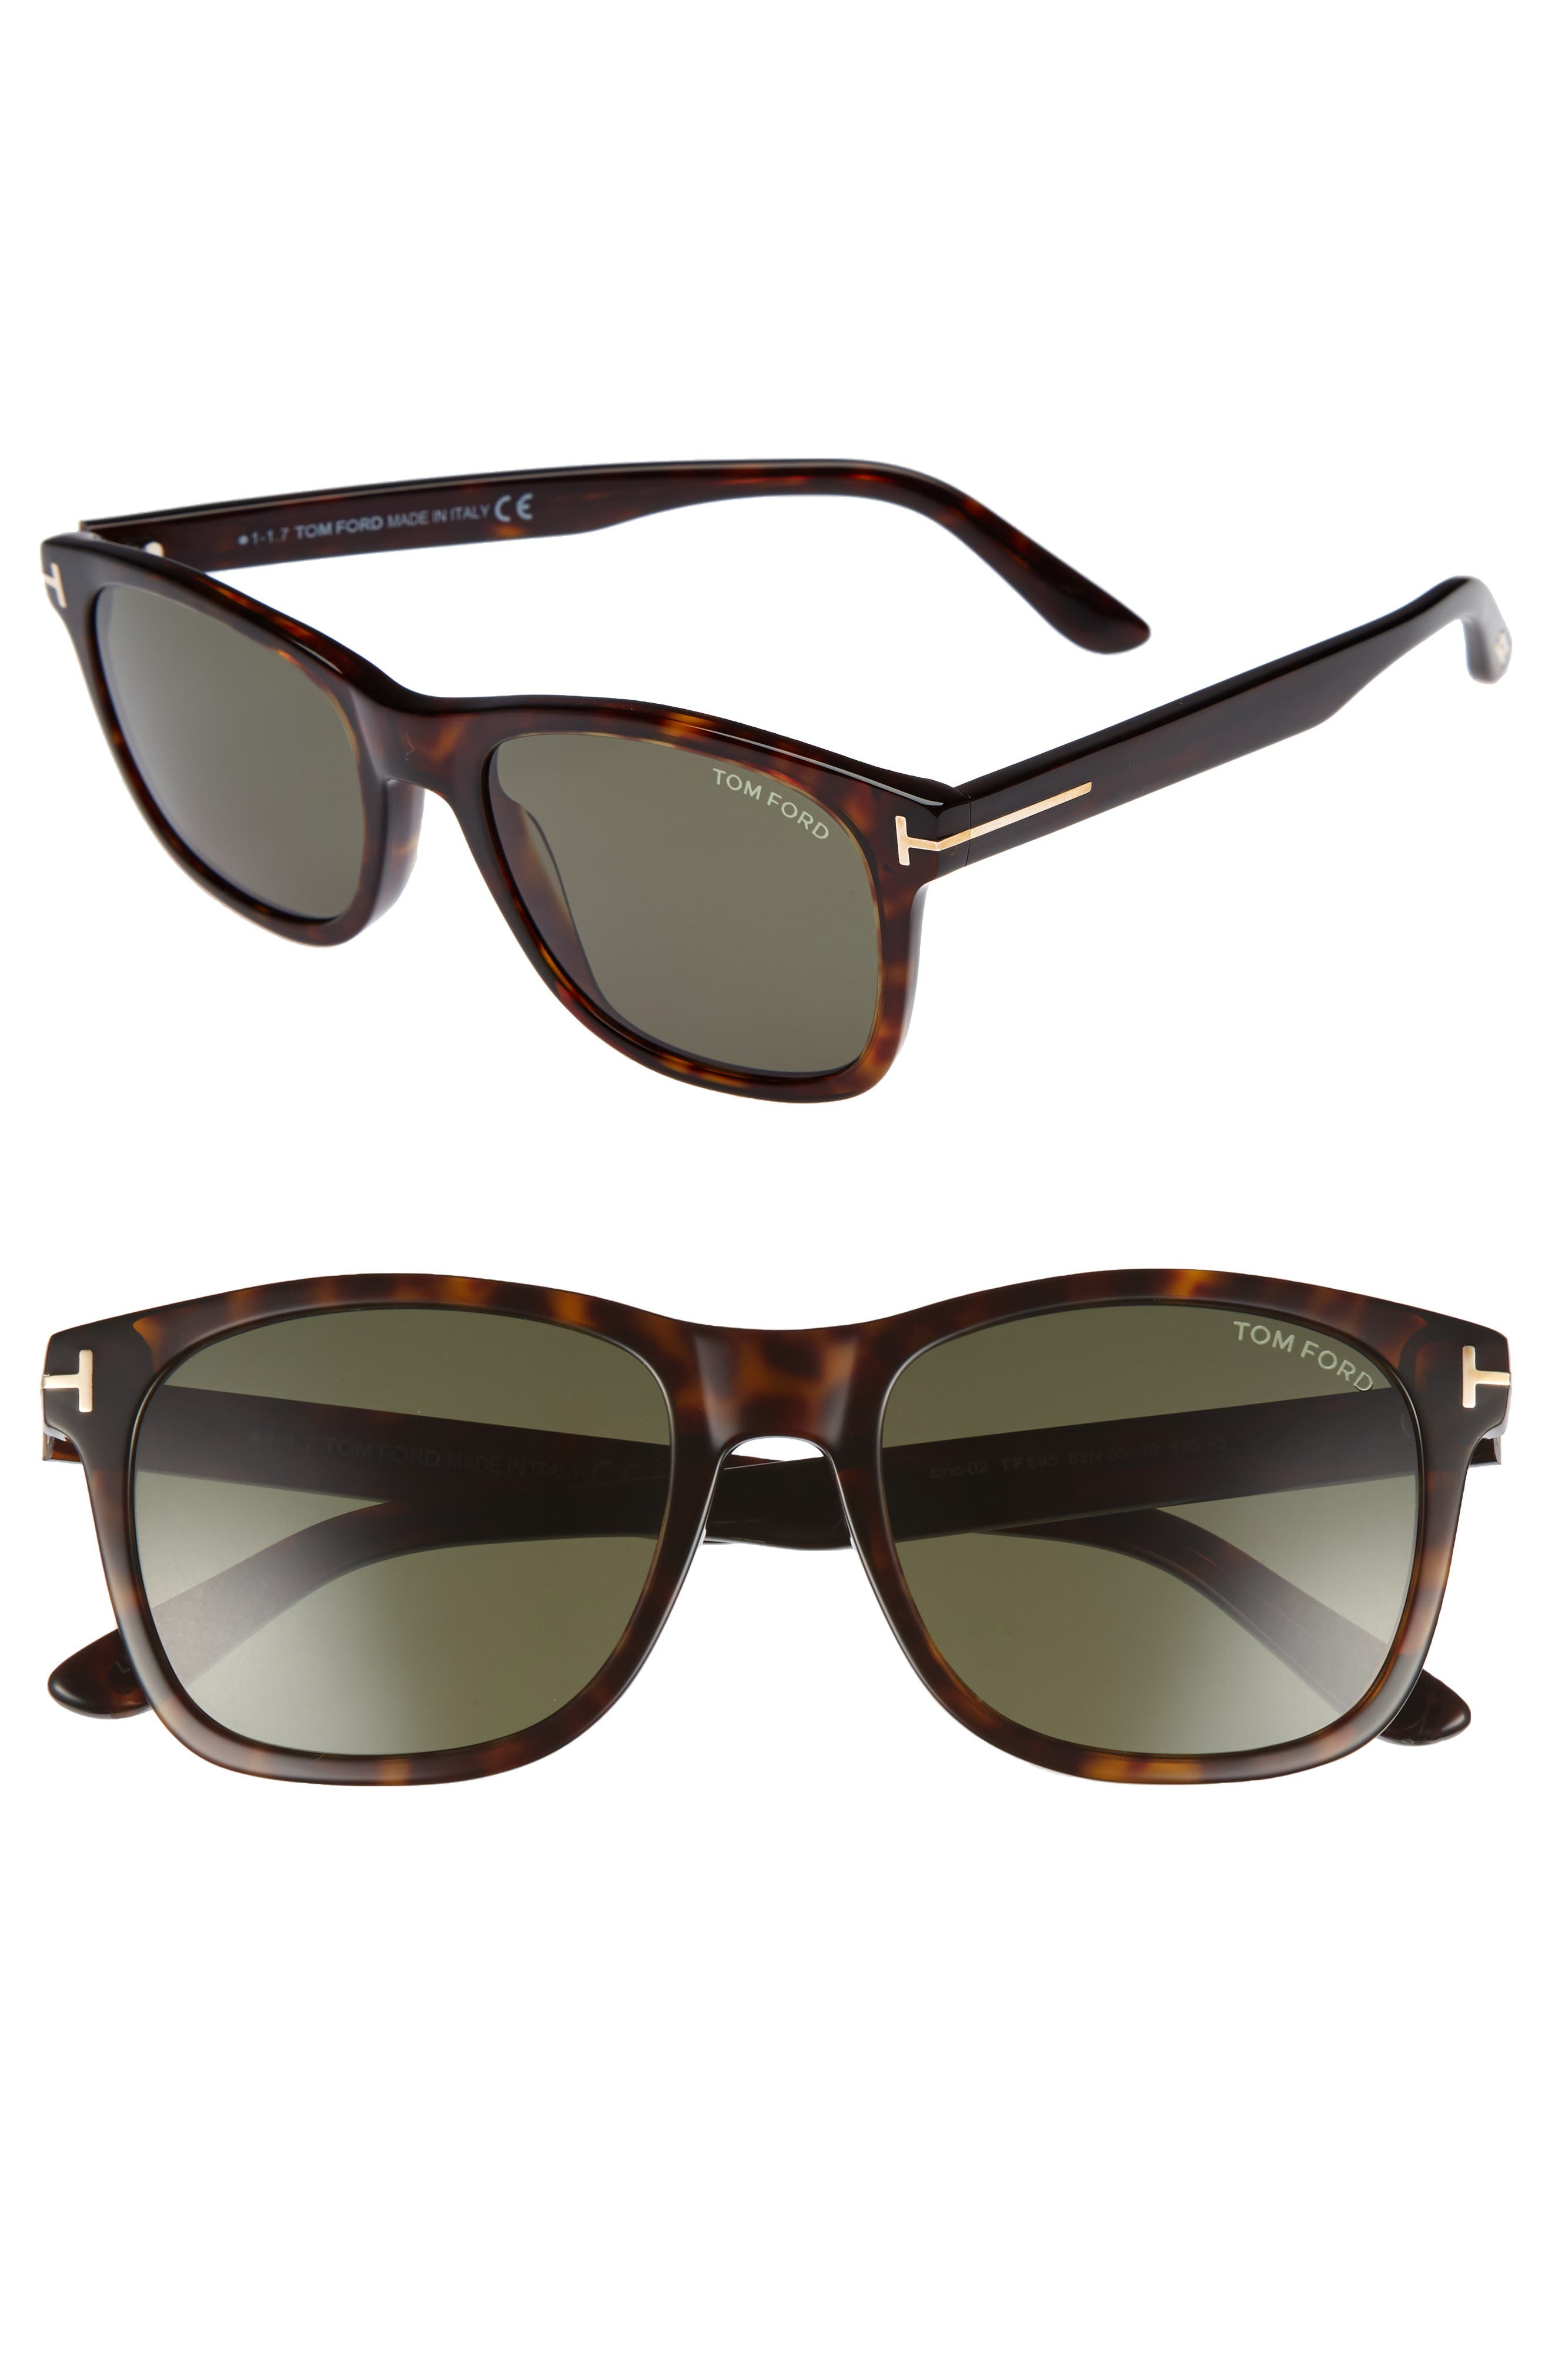 Main Image - Tom Ford Eric 55mm Sunglasses